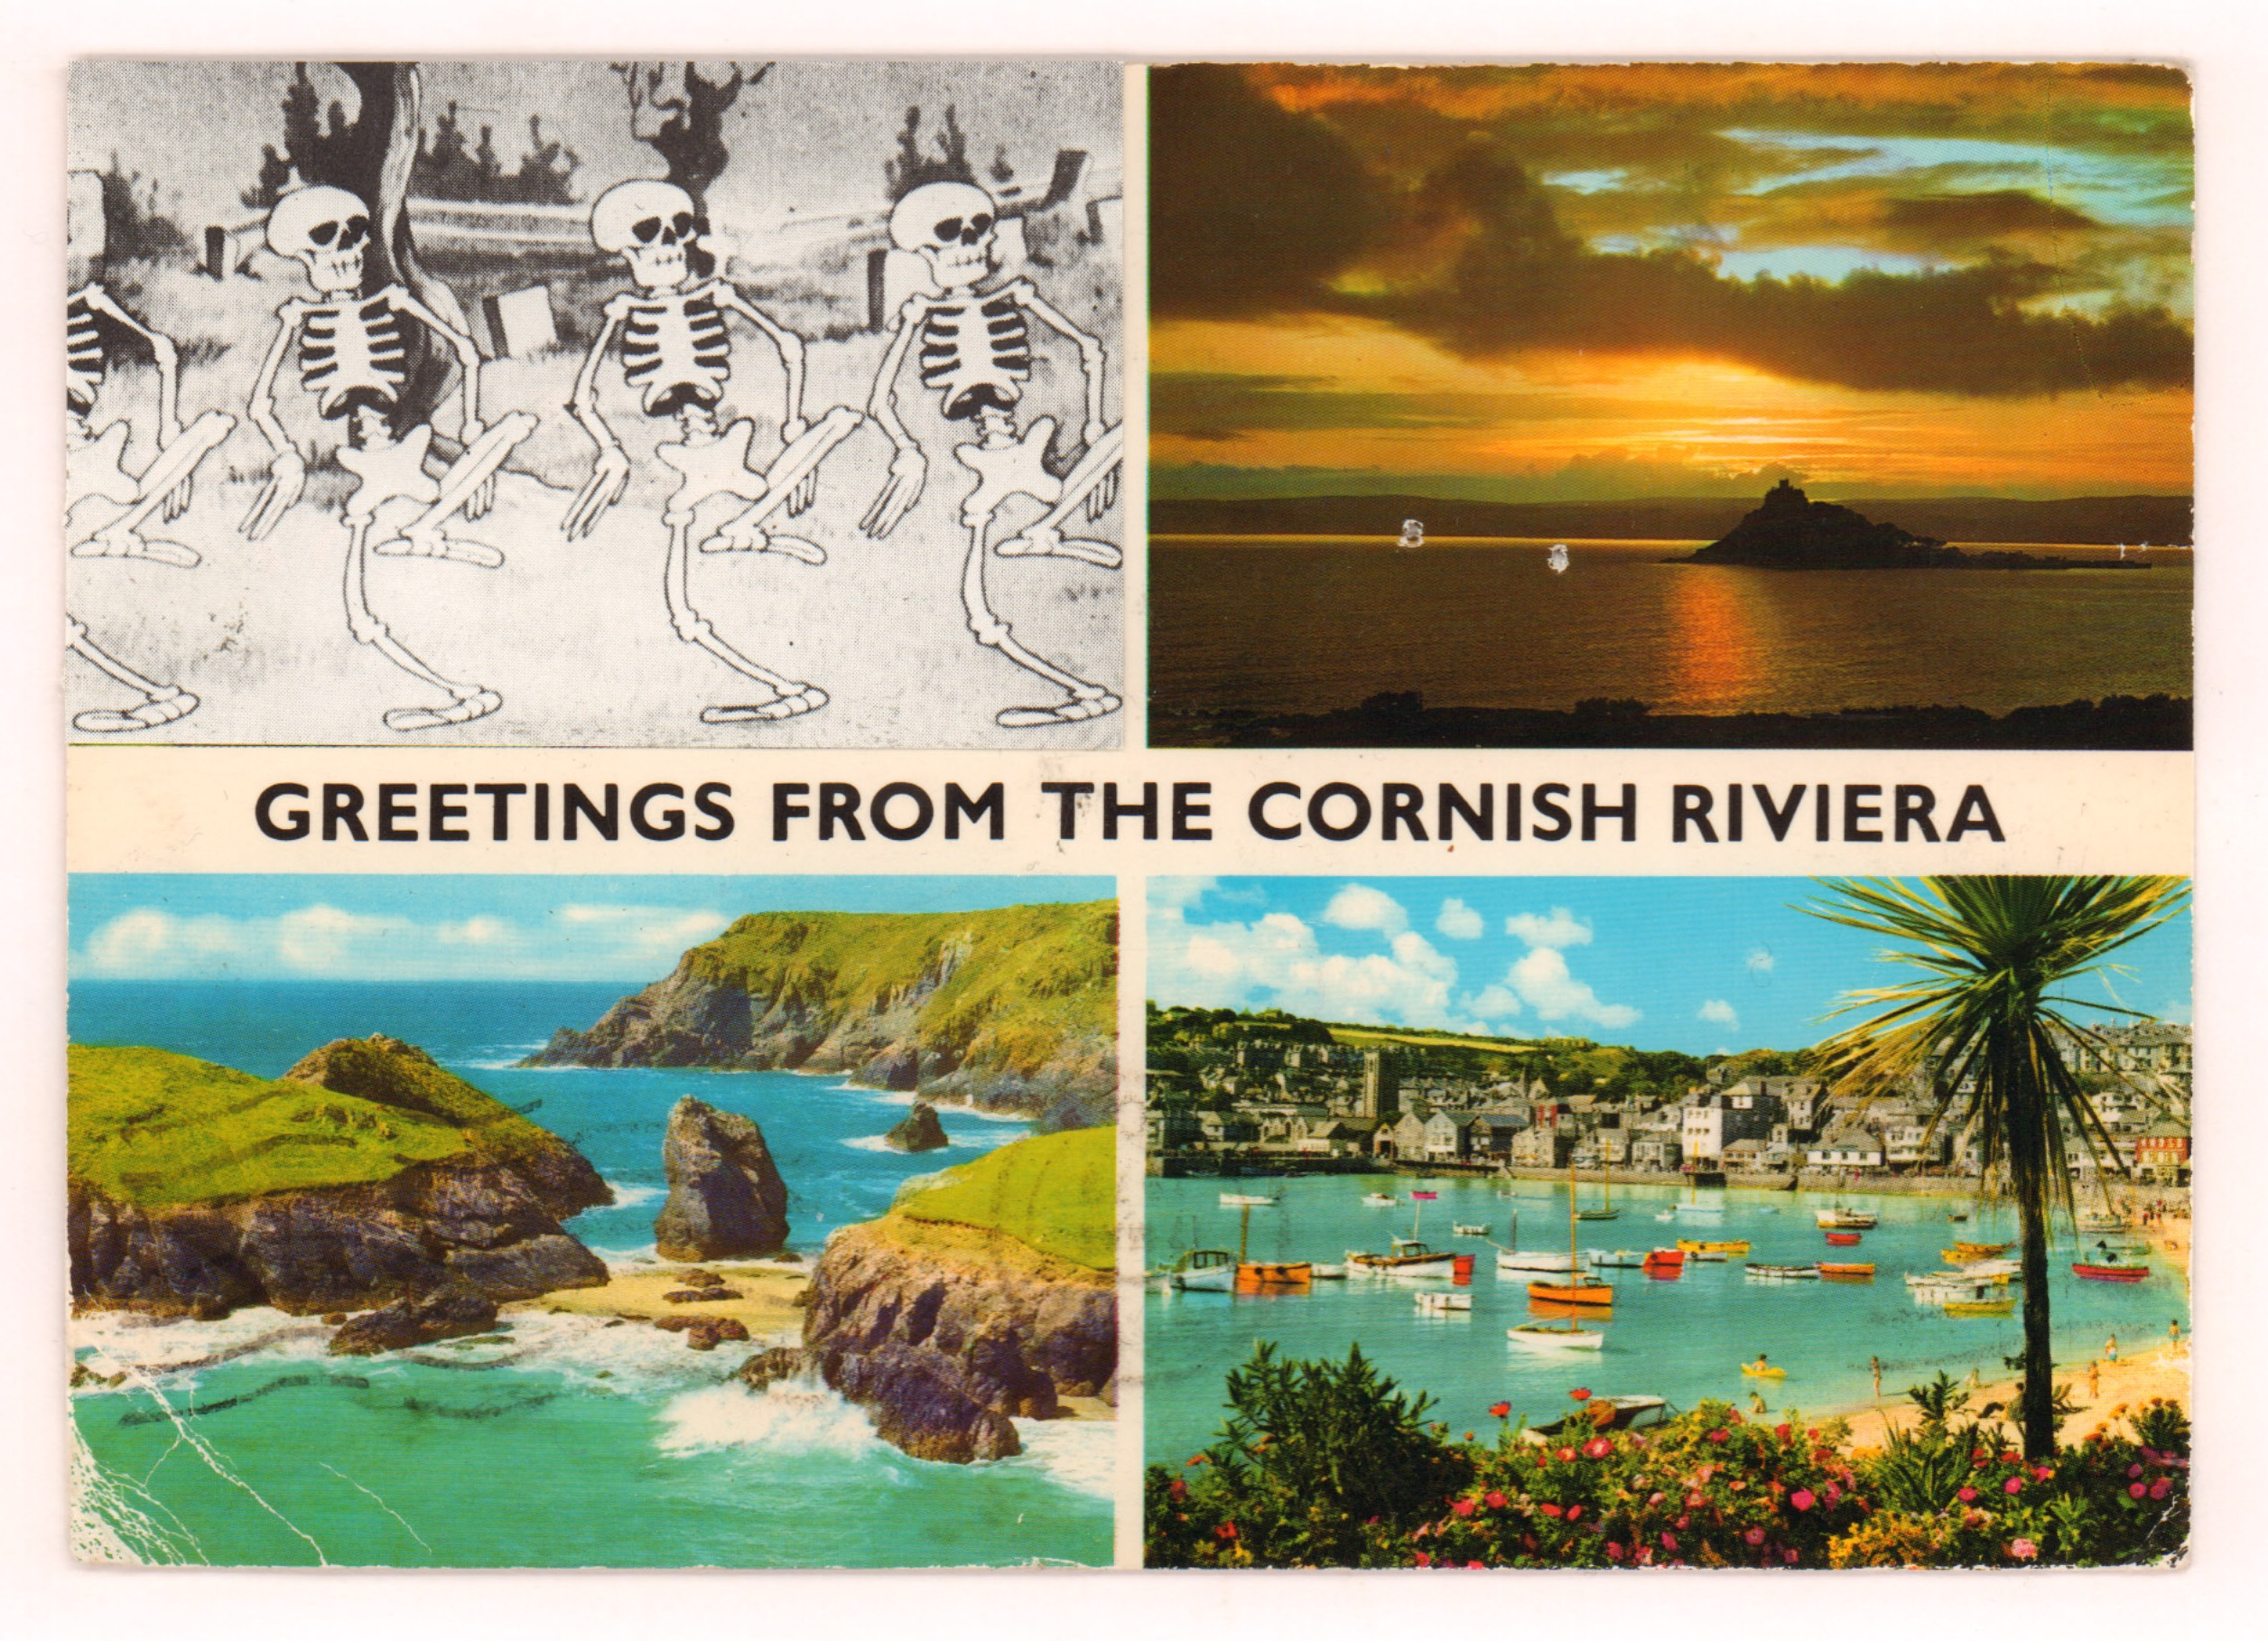 Greetings From the Cornish Riviera